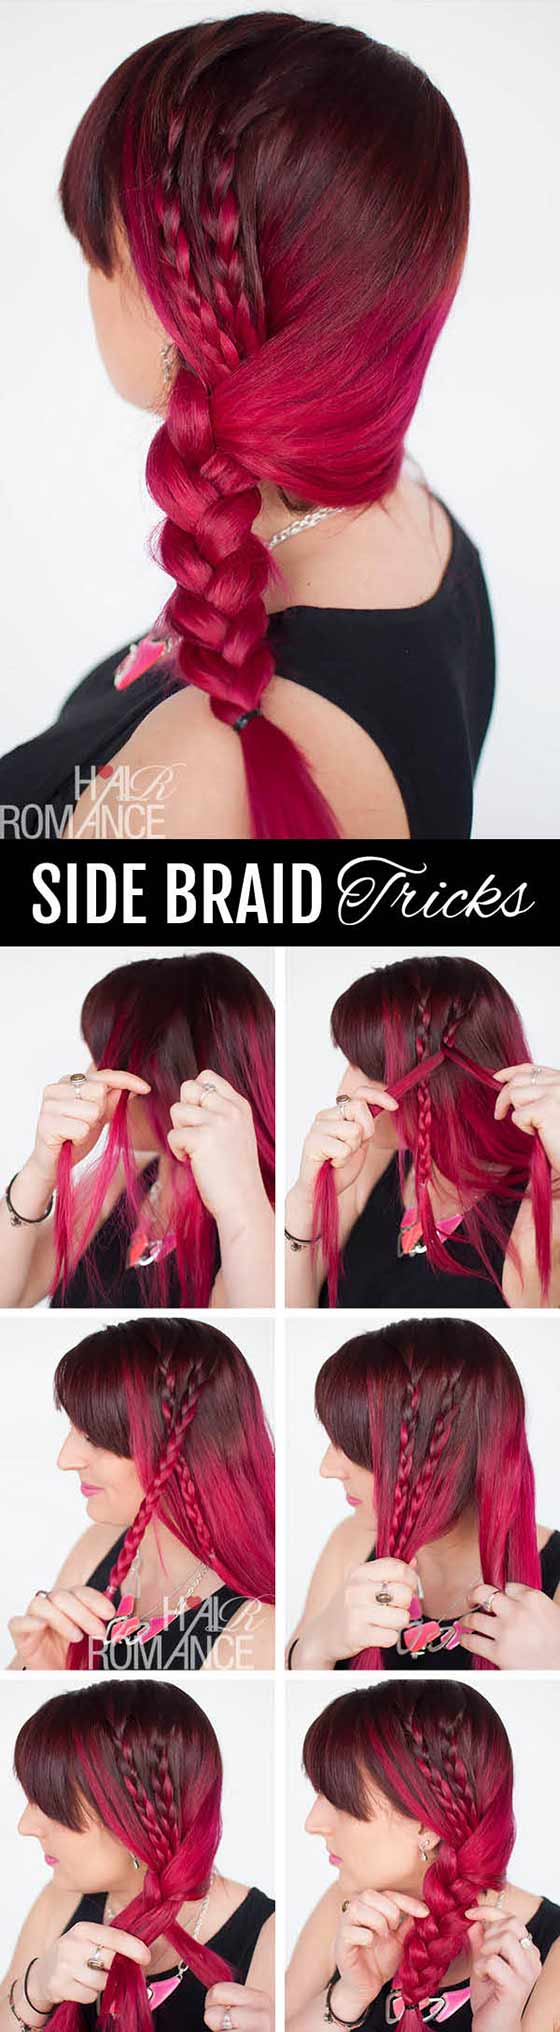 Accented-Side-Braid